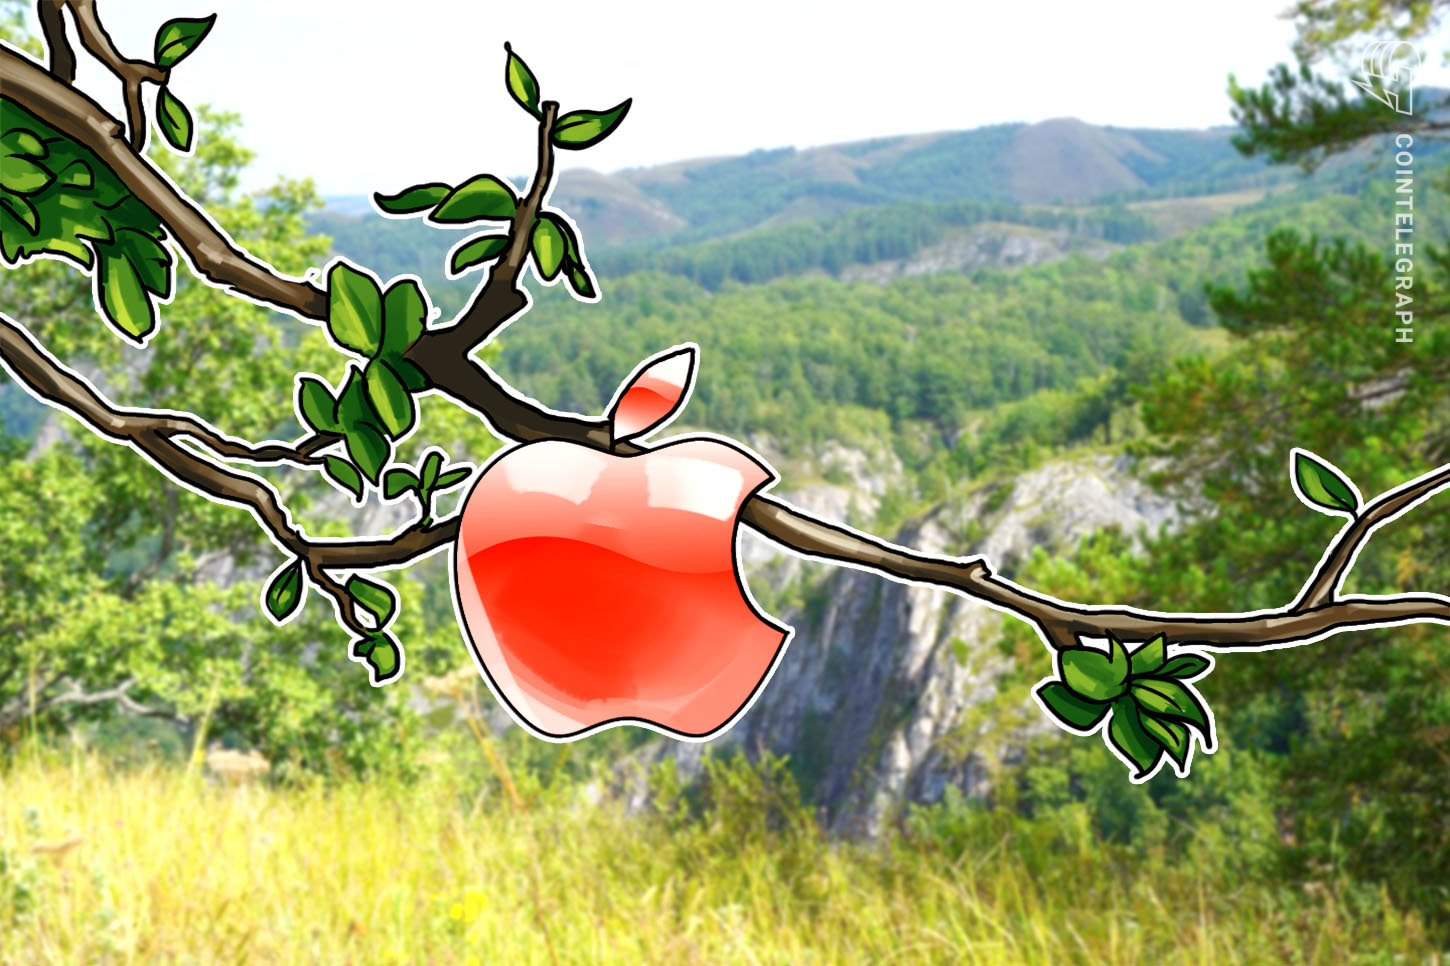 Bitcoin Is the 'New' Apple — How BTC Price Could Reach $60,000 by 2023